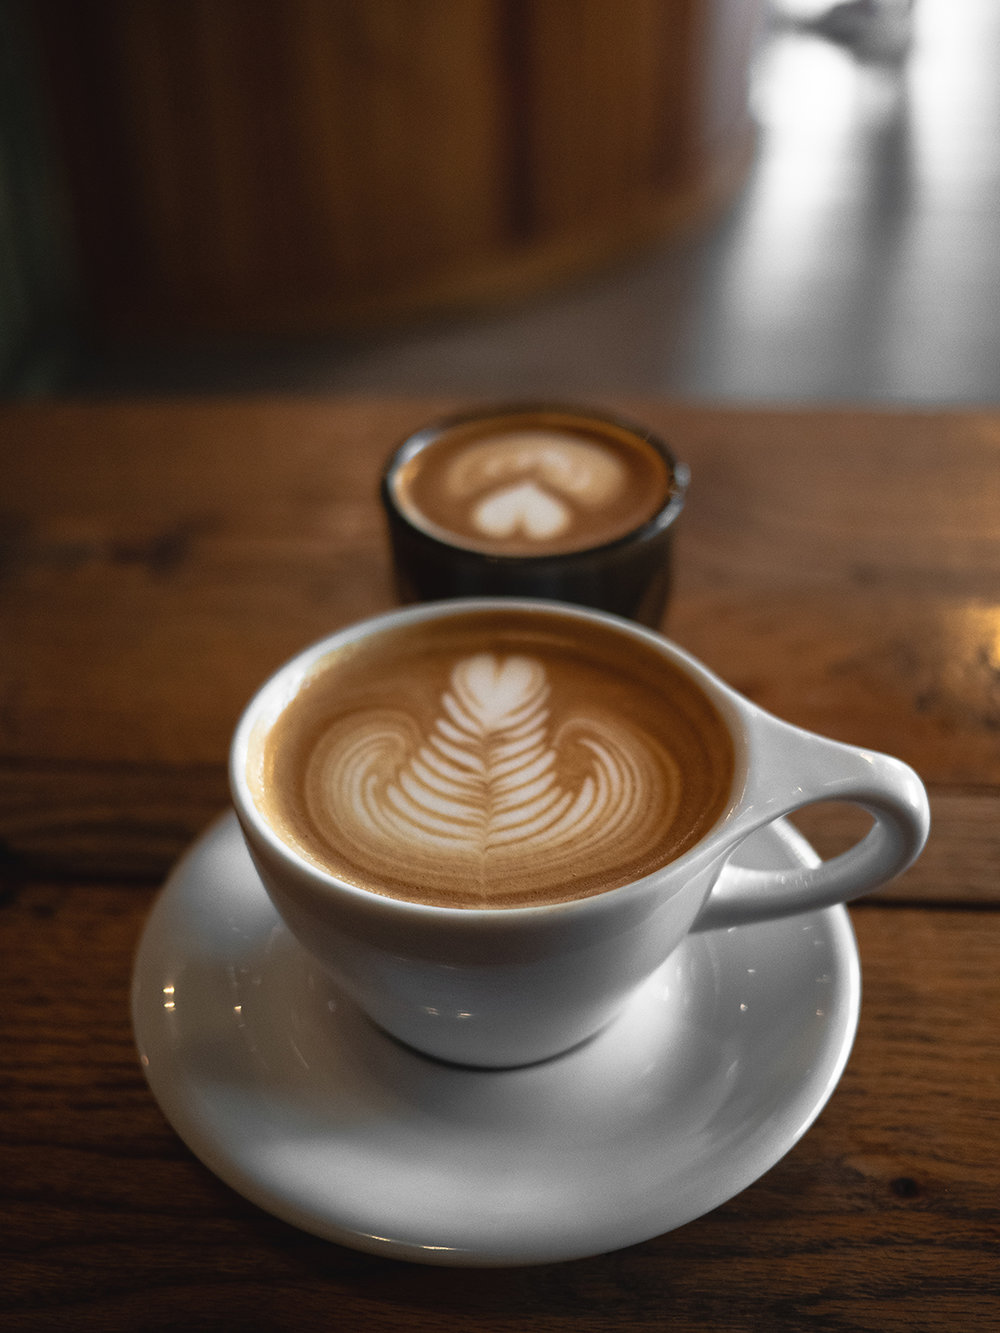 Our coffee is locally roasted and our baristas are carefully trained to pour you the best cup